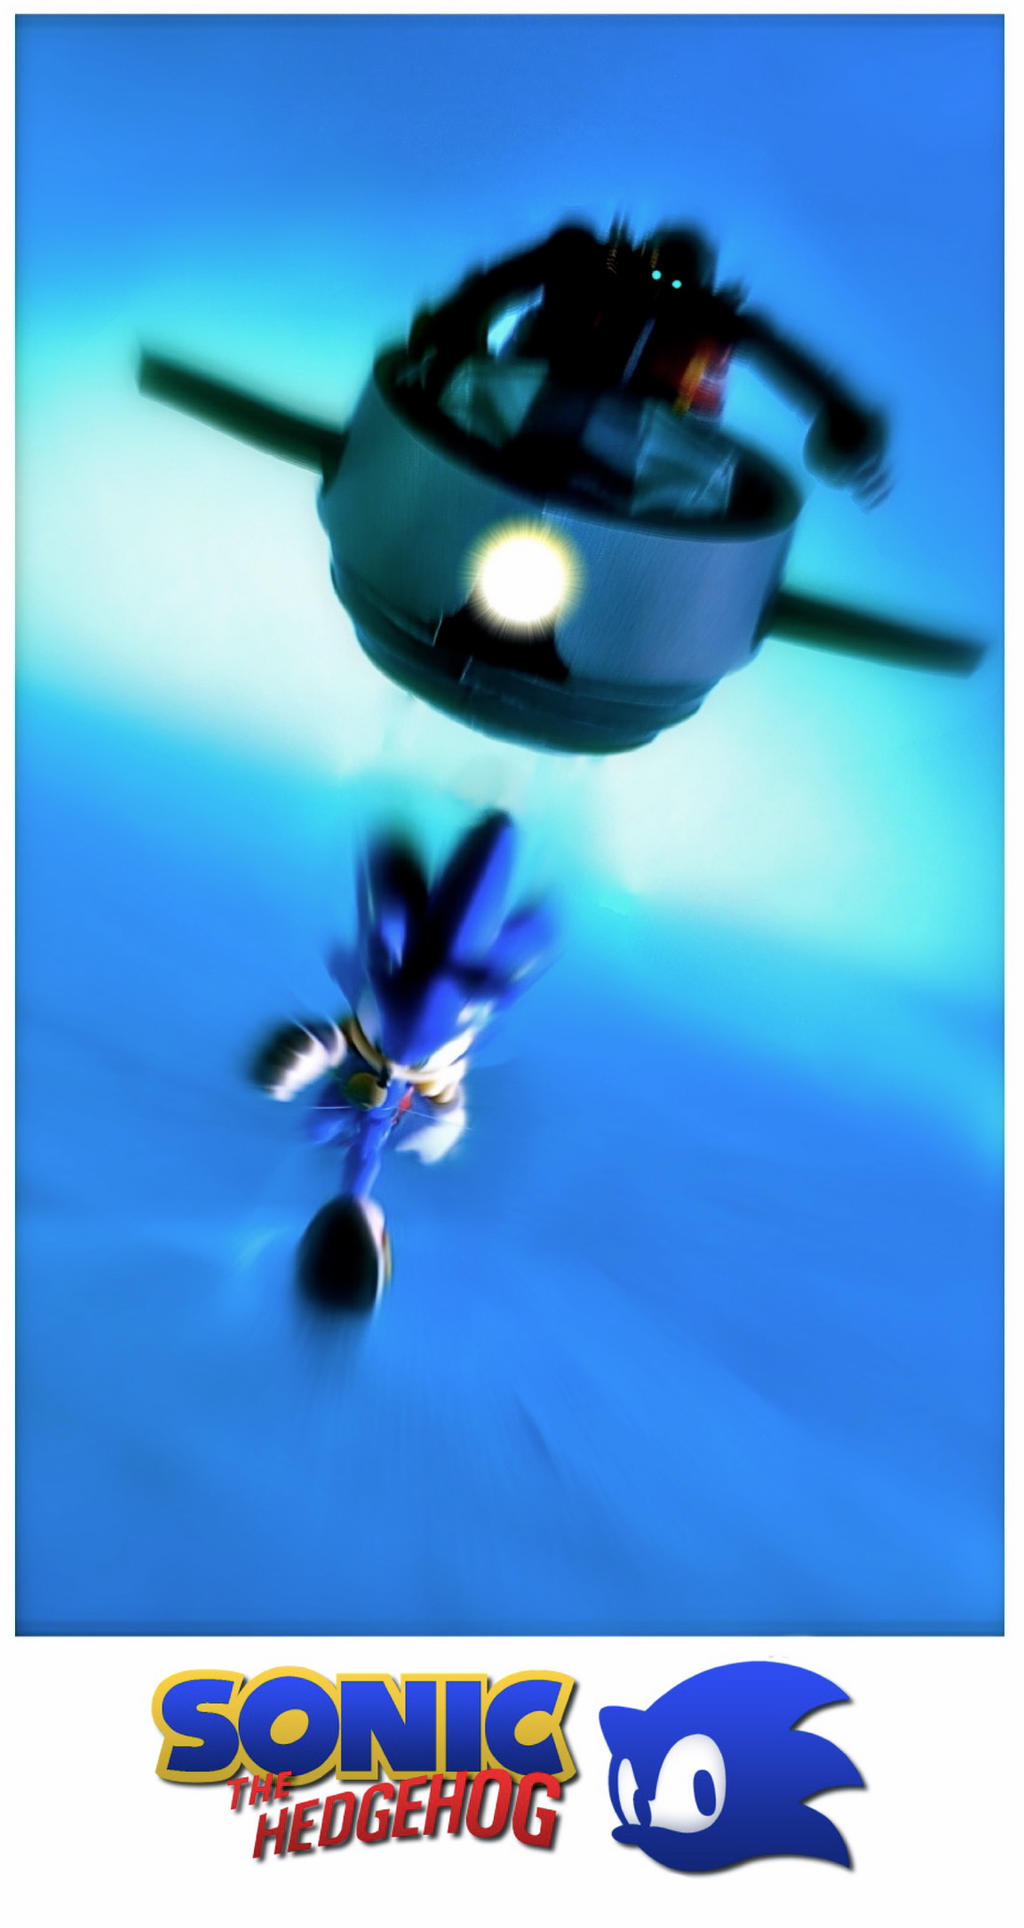 Image removal request use the form below to delete this sonic - Image Removal Request Use The Form Below To Delete This Dr Robotnik Photo Collection